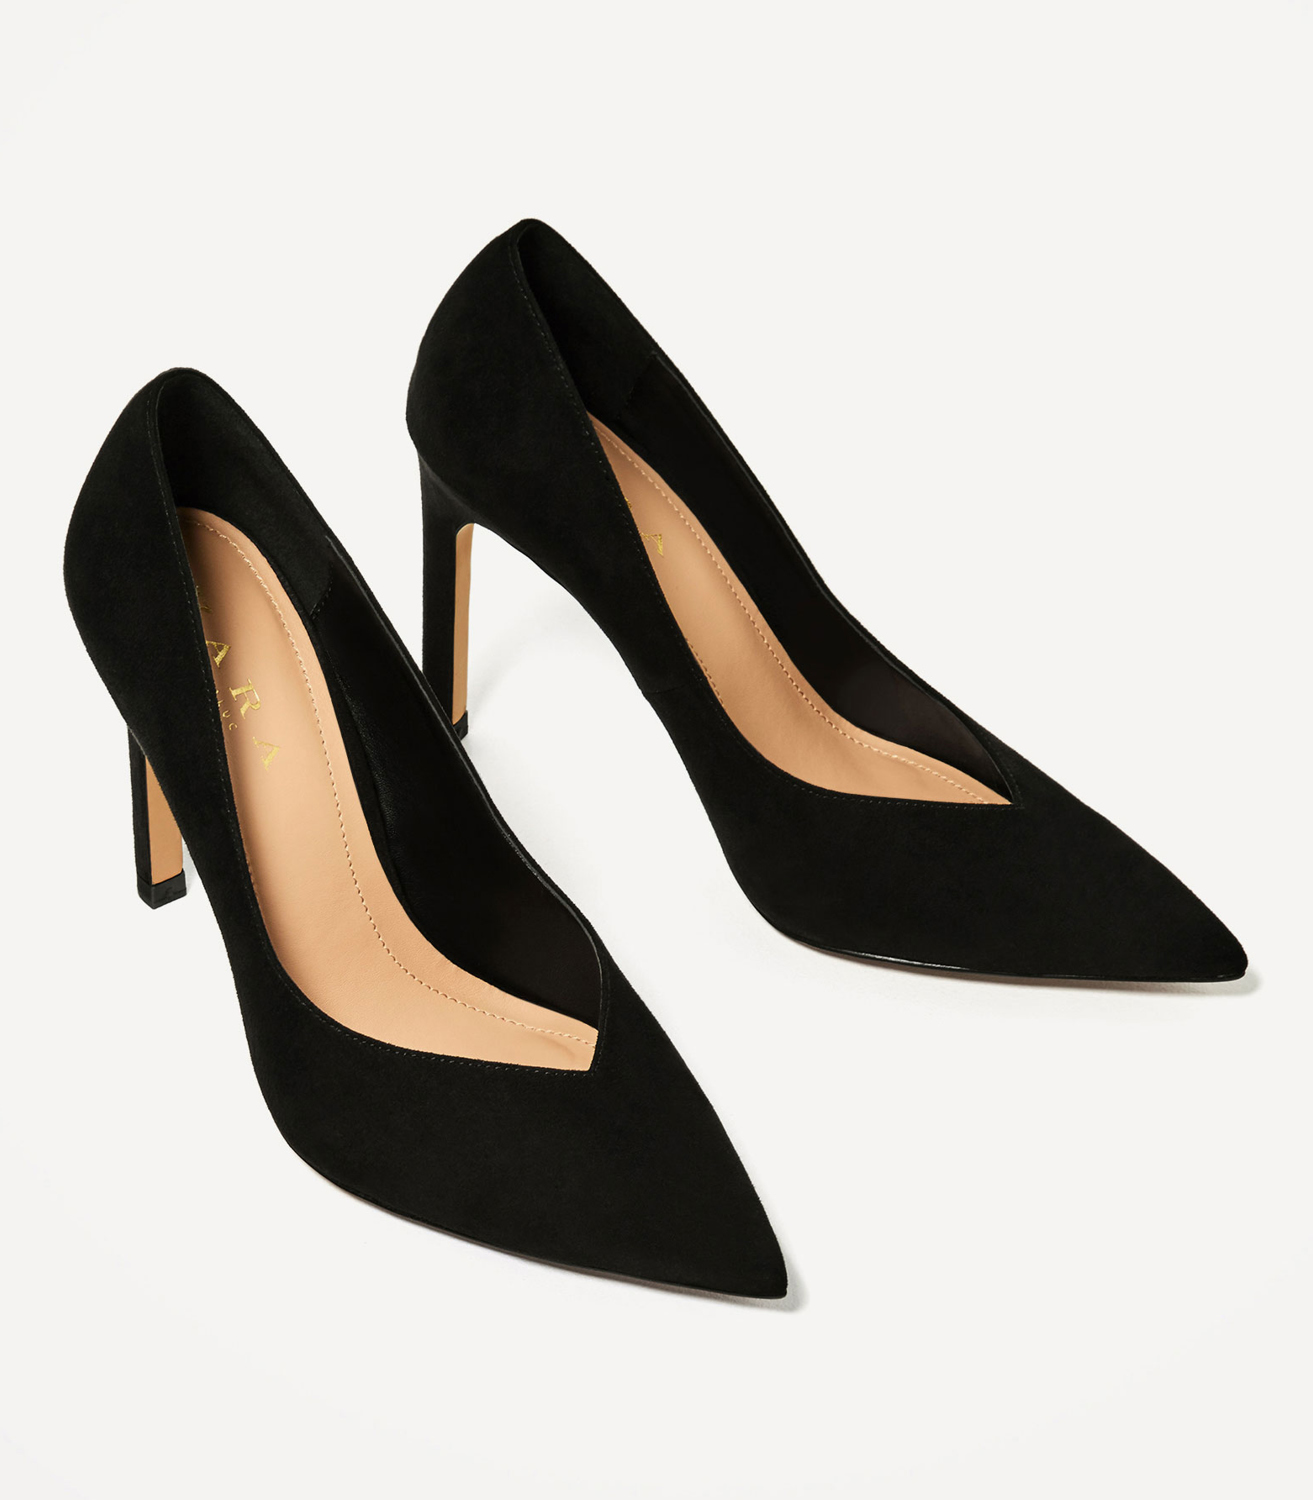 Buy Zara Pumps